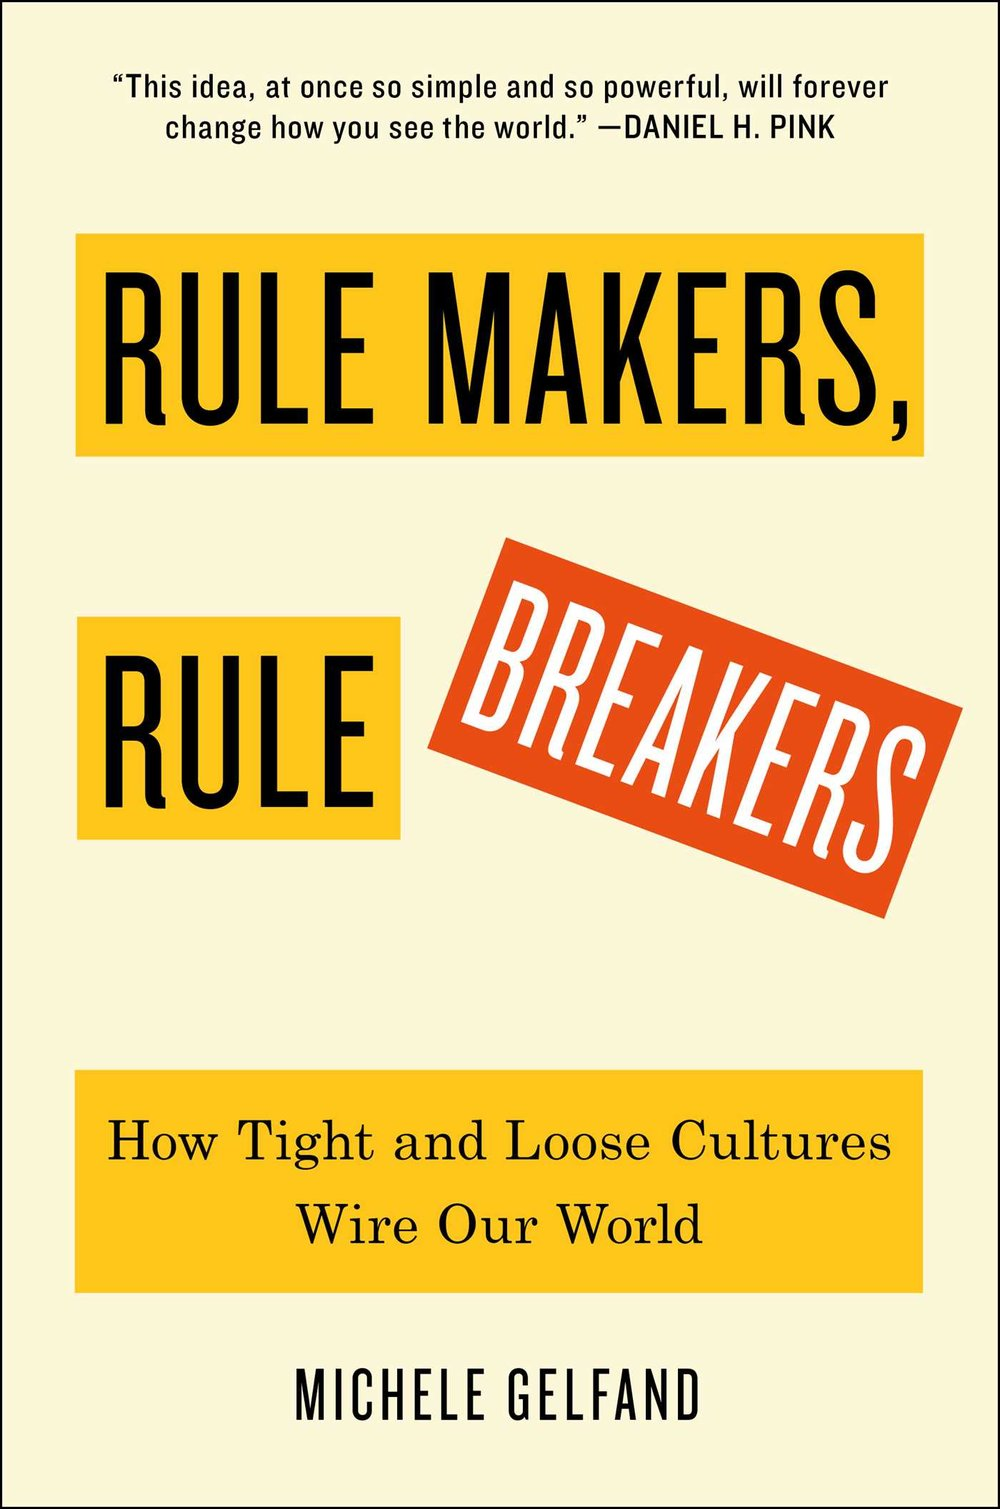 rule-makers-rule-breakers.jpg